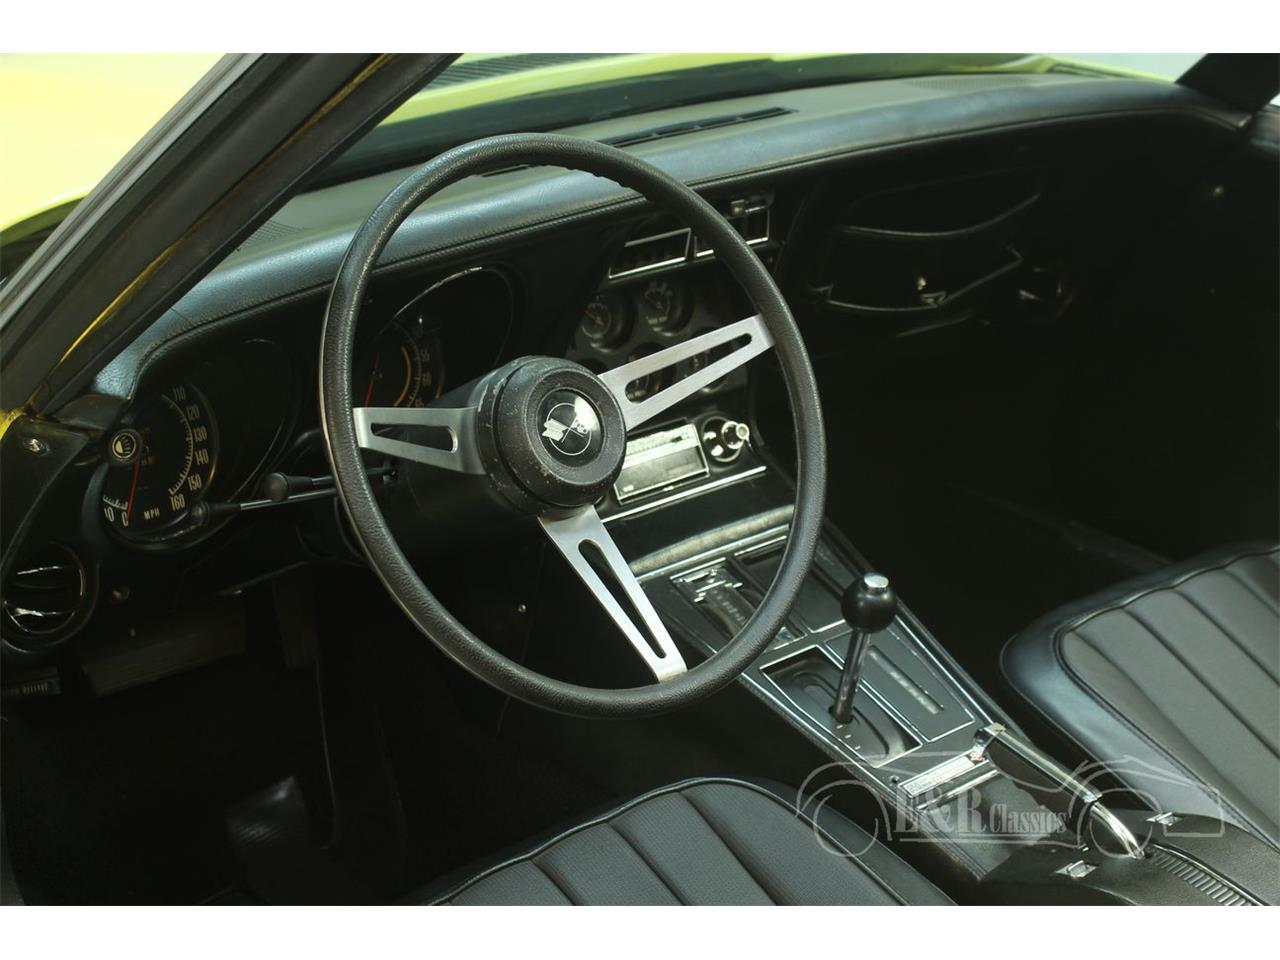 Large Picture of 1974 Chevrolet Corvette located in noord brabant - $33,500.00 Offered by E & R Classics - Q3R0